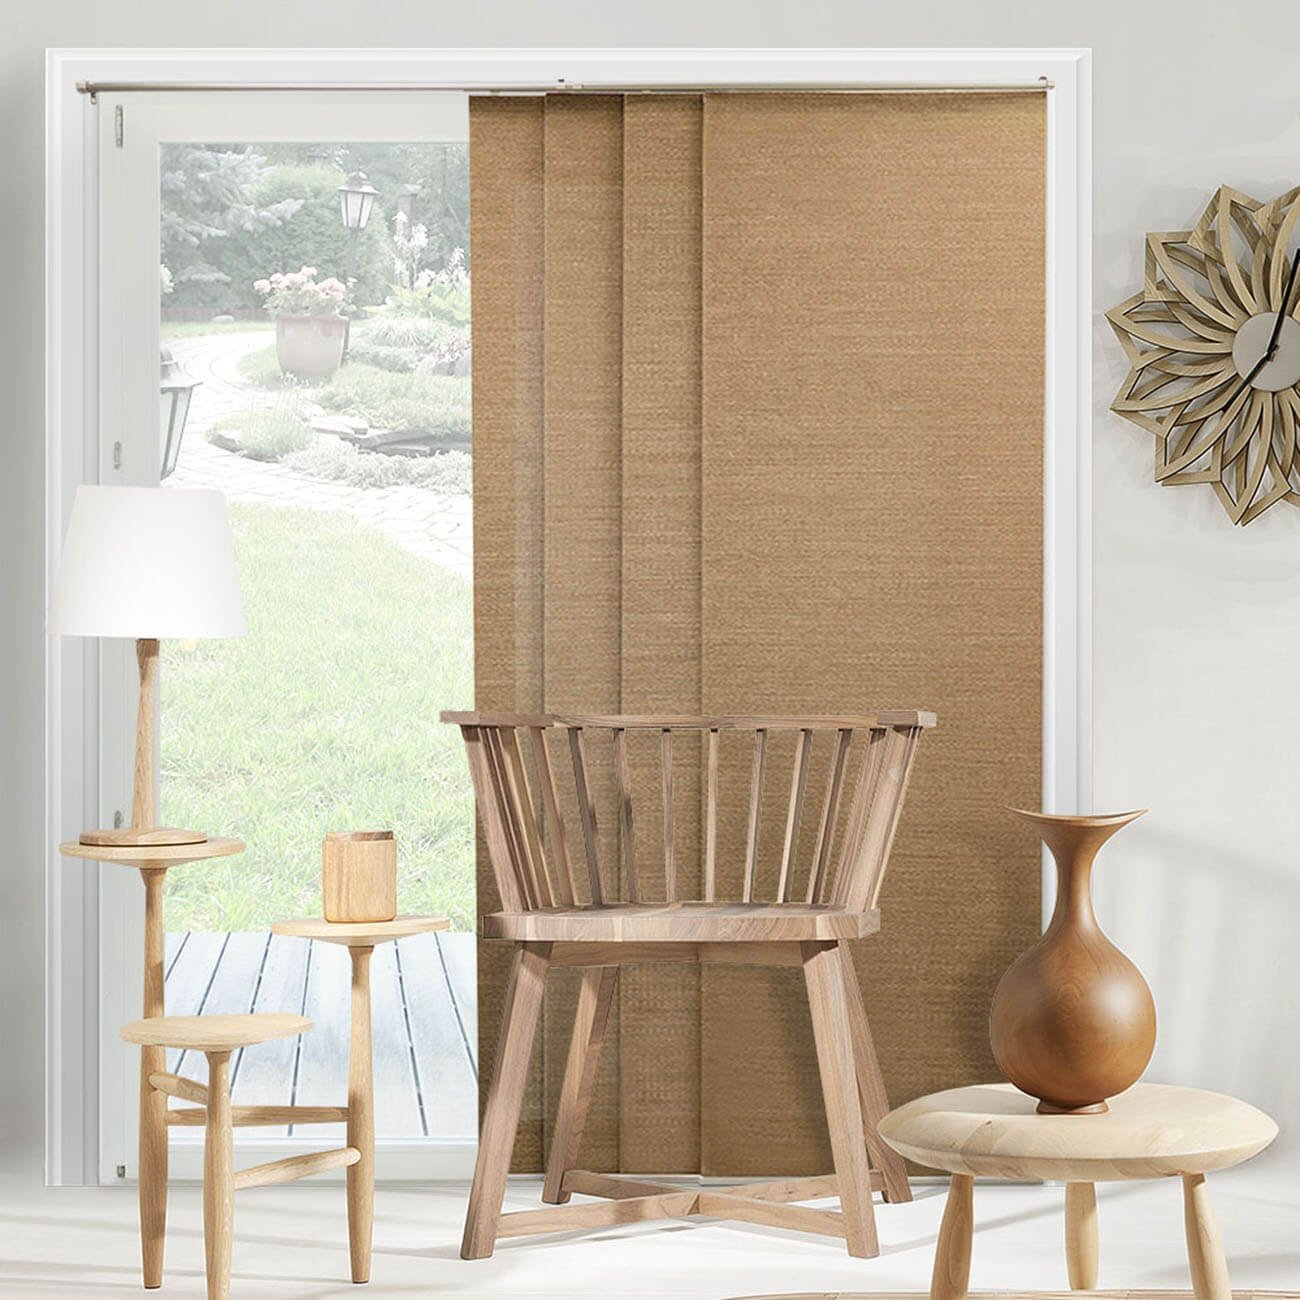 Chicology Adjustable Sliding Panels / Cut To Length, Curtain Drape Vertical  Blind, Natural Woven, Privacy   Birch Truffle